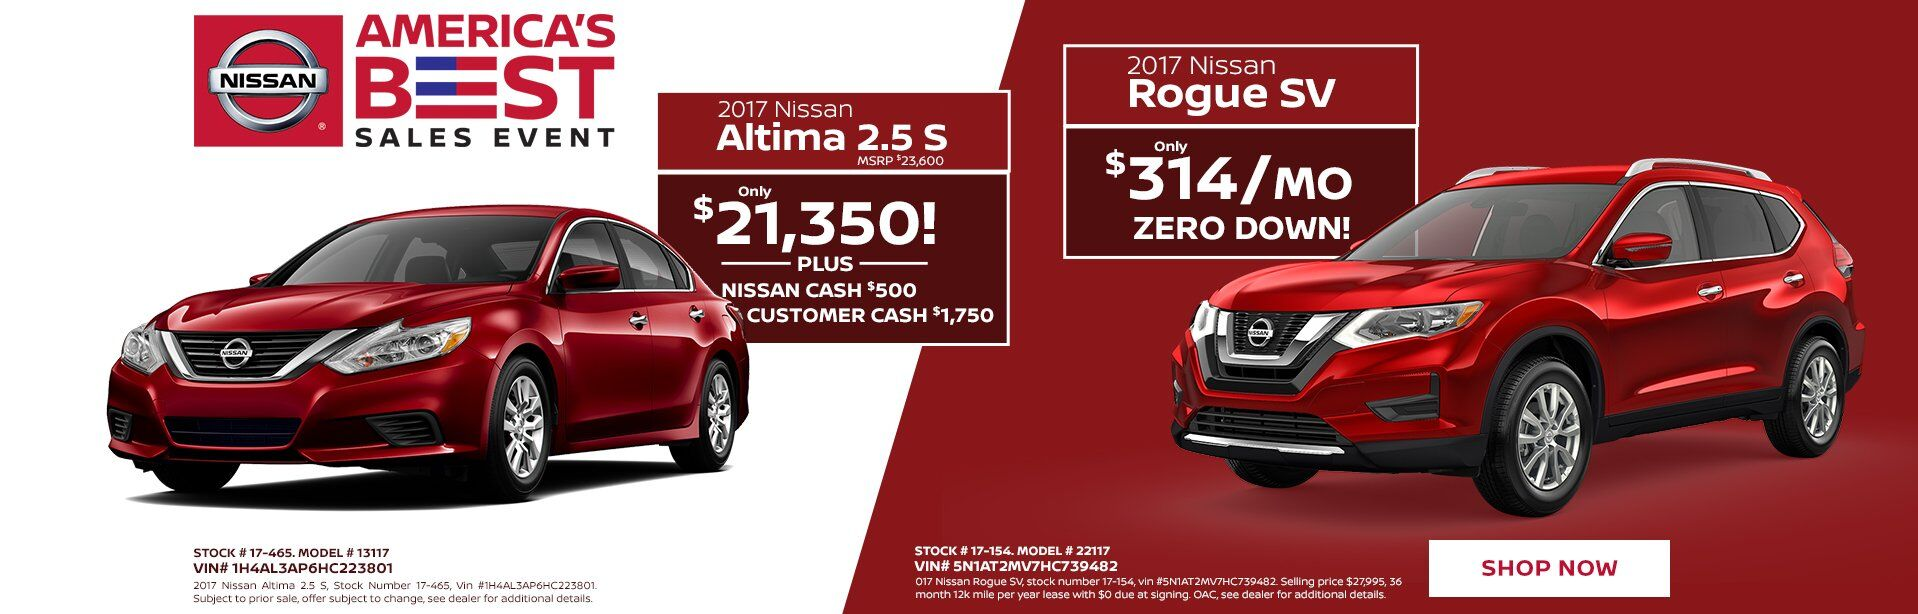 Altima and Rogue